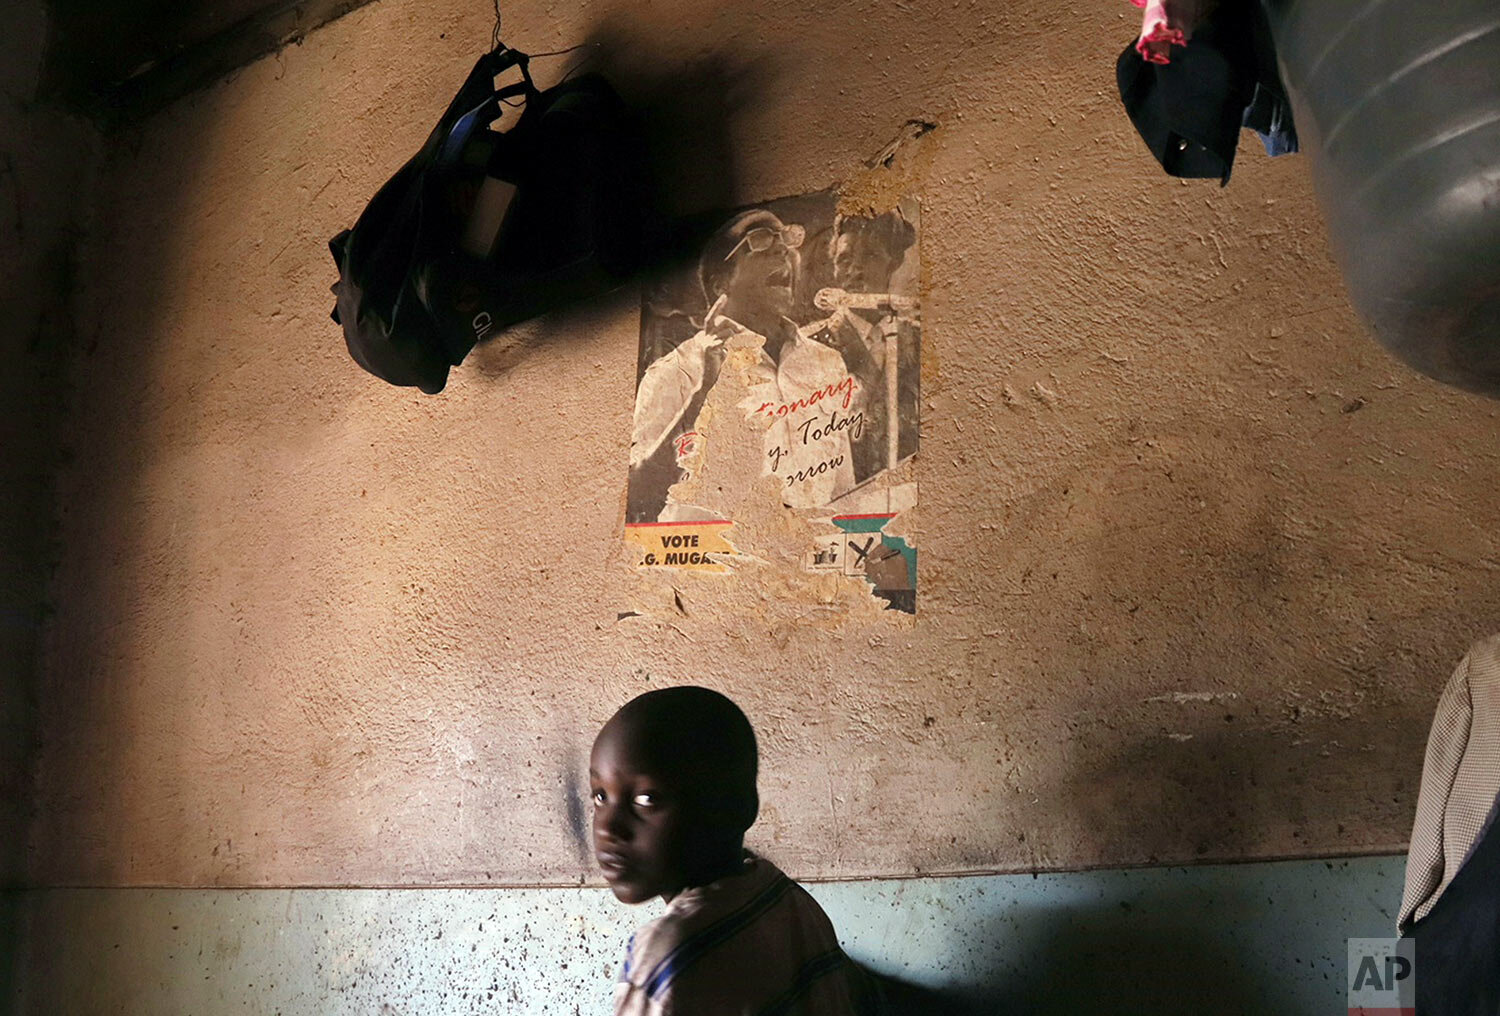 A young child walks past a poster of former Zimbabwean President Robert Mugabe in a building in Harare, Sept. 6, 2019. (AP Photo)